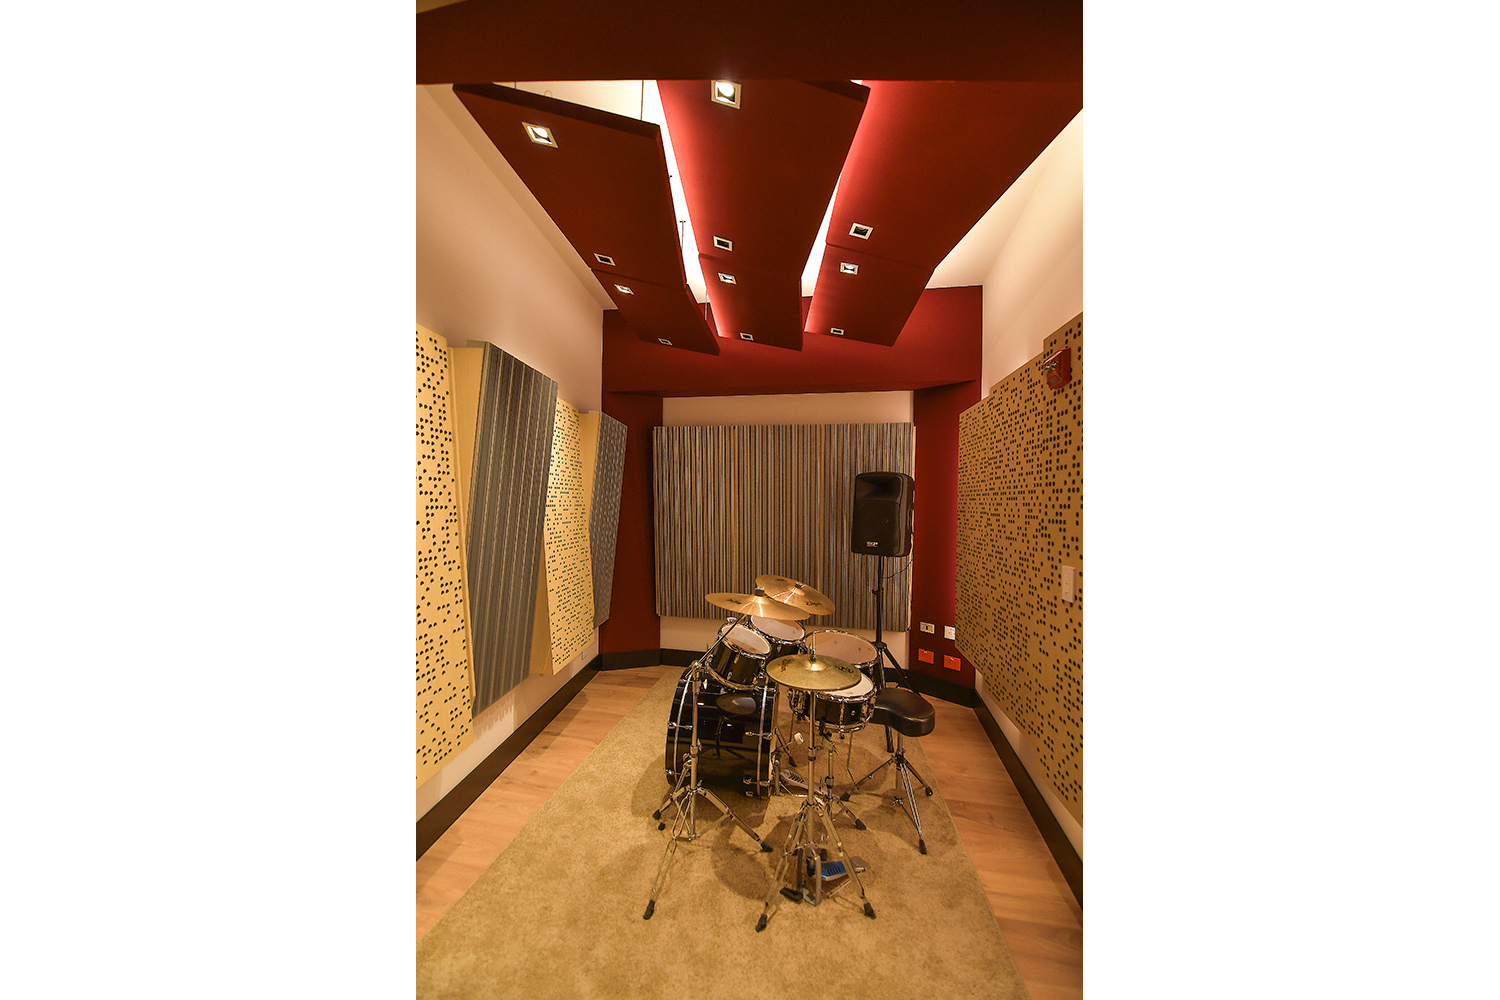 Universidad ICESI new world-class recording studio facility designed by WSDG. Small rehearsal space.